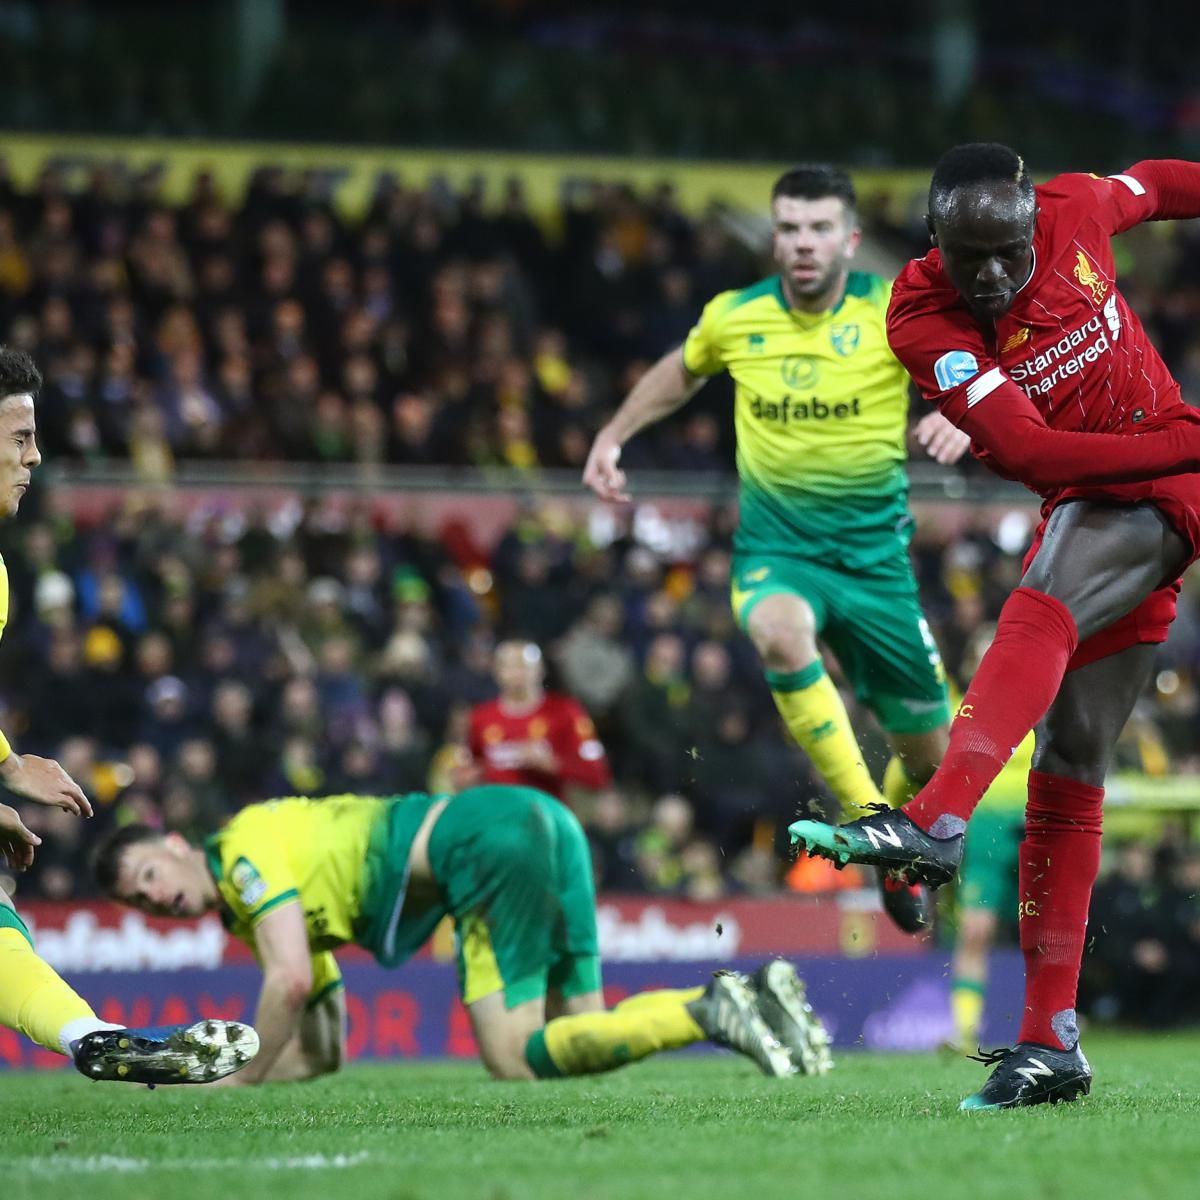 Sadio Mane's 100th English Goal Helps Liverpool Past Norwich to Stay Unbeaten